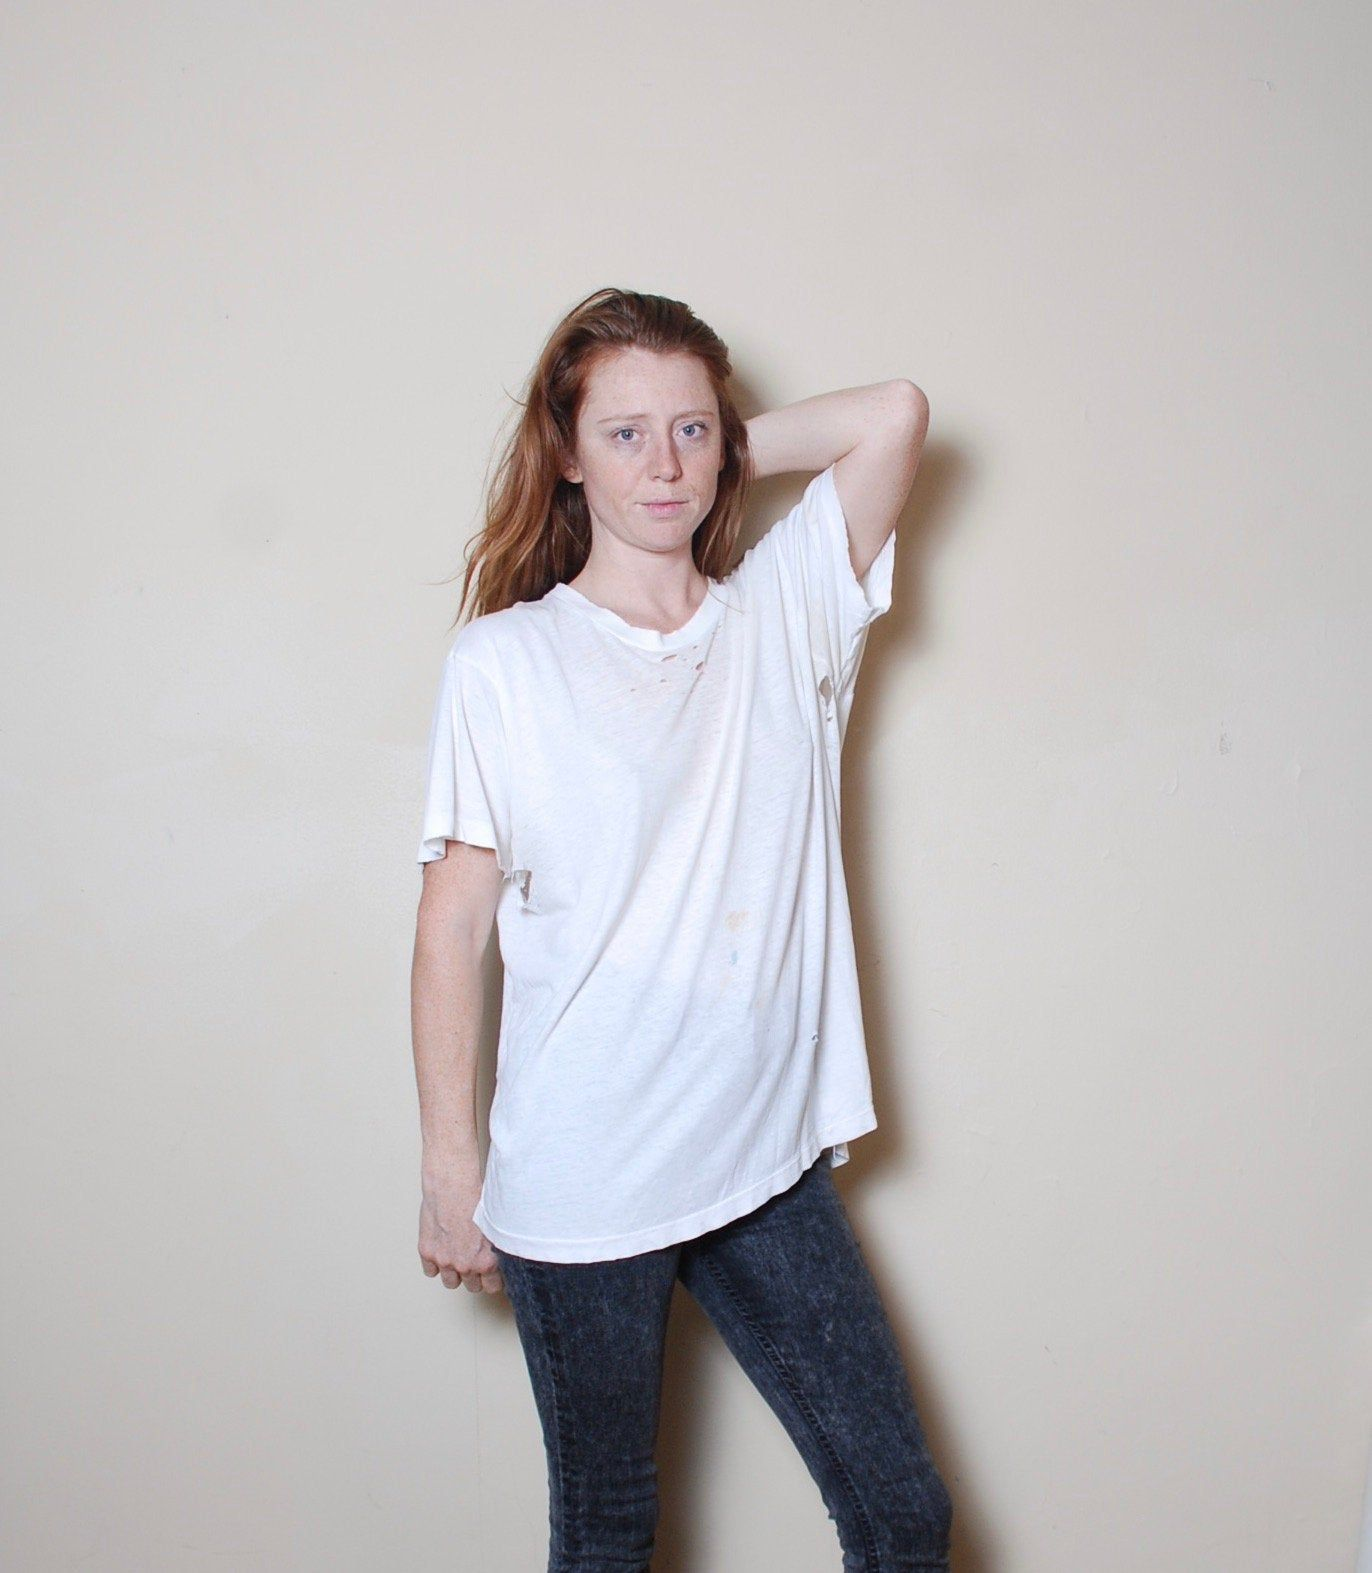 80s Xl Fruit Of The Loom Thrashed White Tee Mens Distressed Punk Vintage T Shirt Top Boho Hippie Festival Rock In 2020 Brown Knit Sweater Vintage Store Vintage Outfits